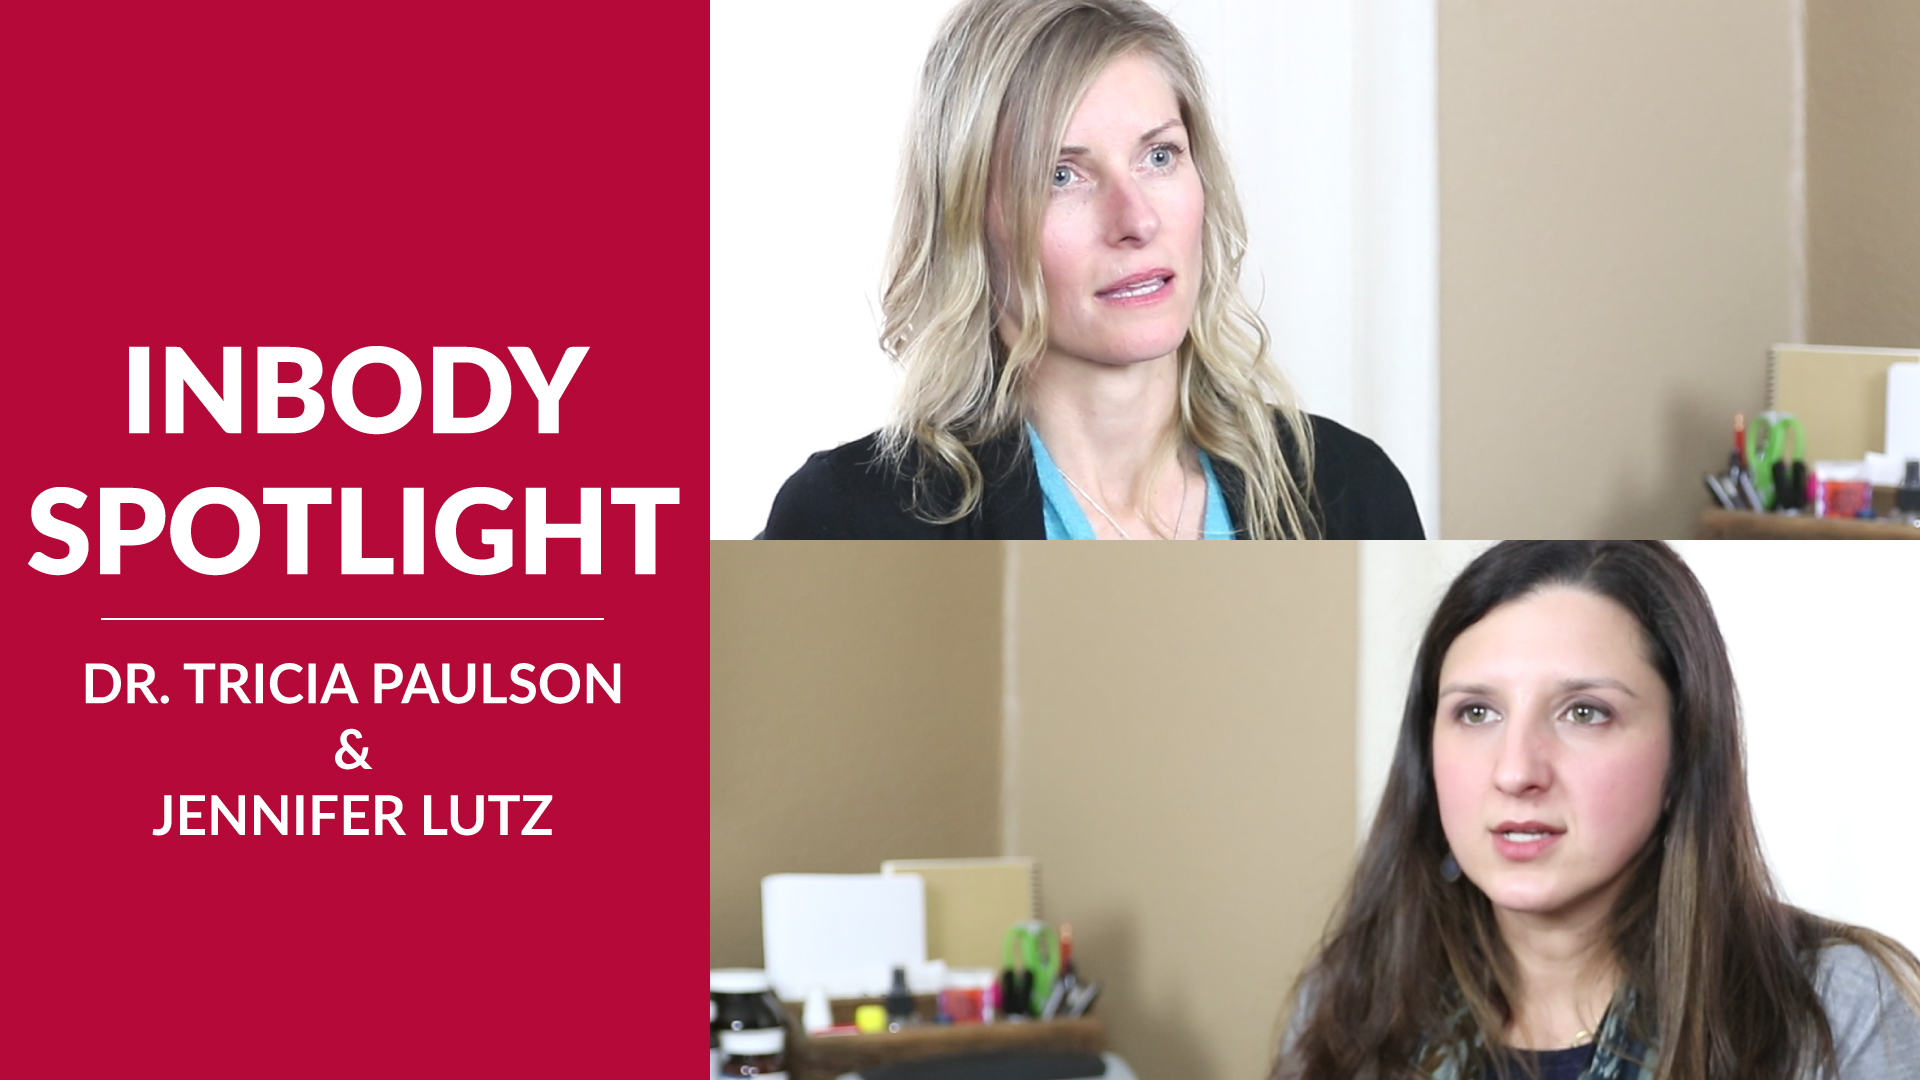 inbody spotlight video thumbnail dr. tricia paulson and jennifer lutz